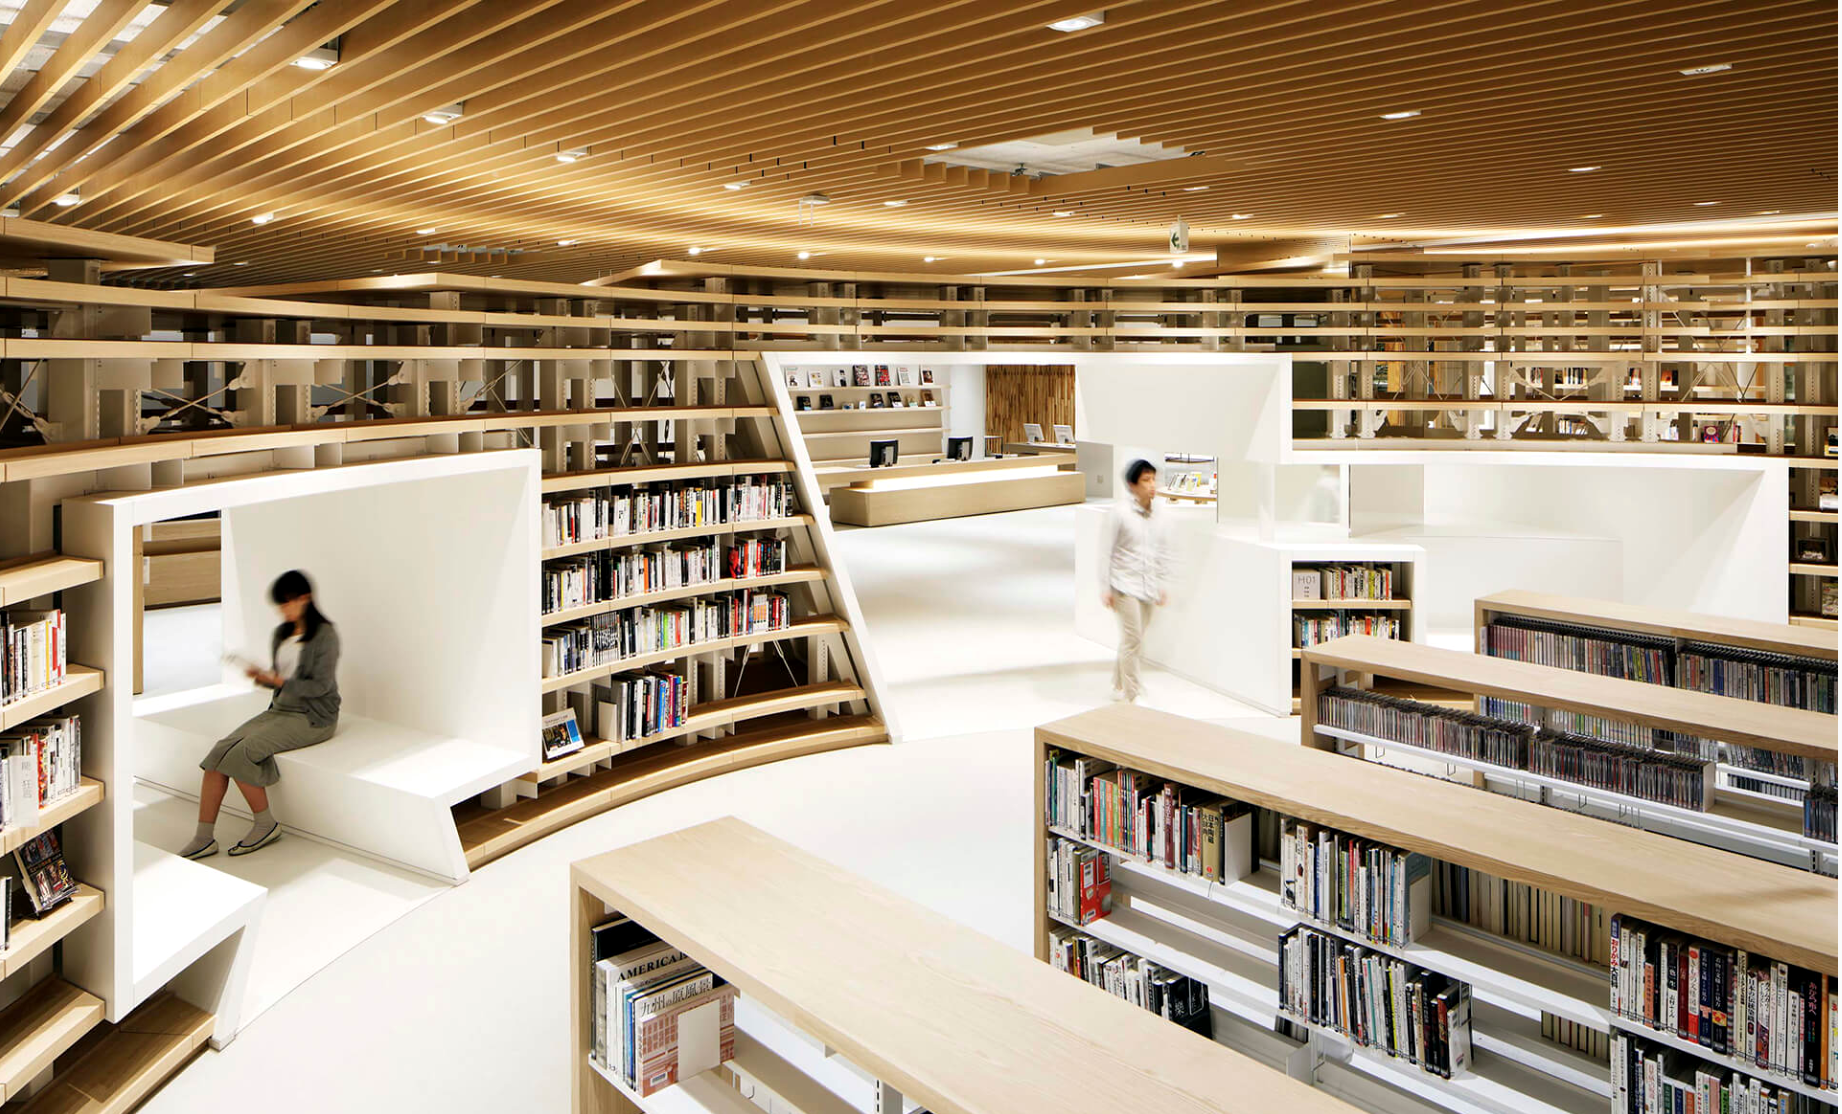 nine beautiful libraries in asia - Take a look at some of the most breathtakingly beautiful libraries found in Japan, Taiwan, Singapore, and China.